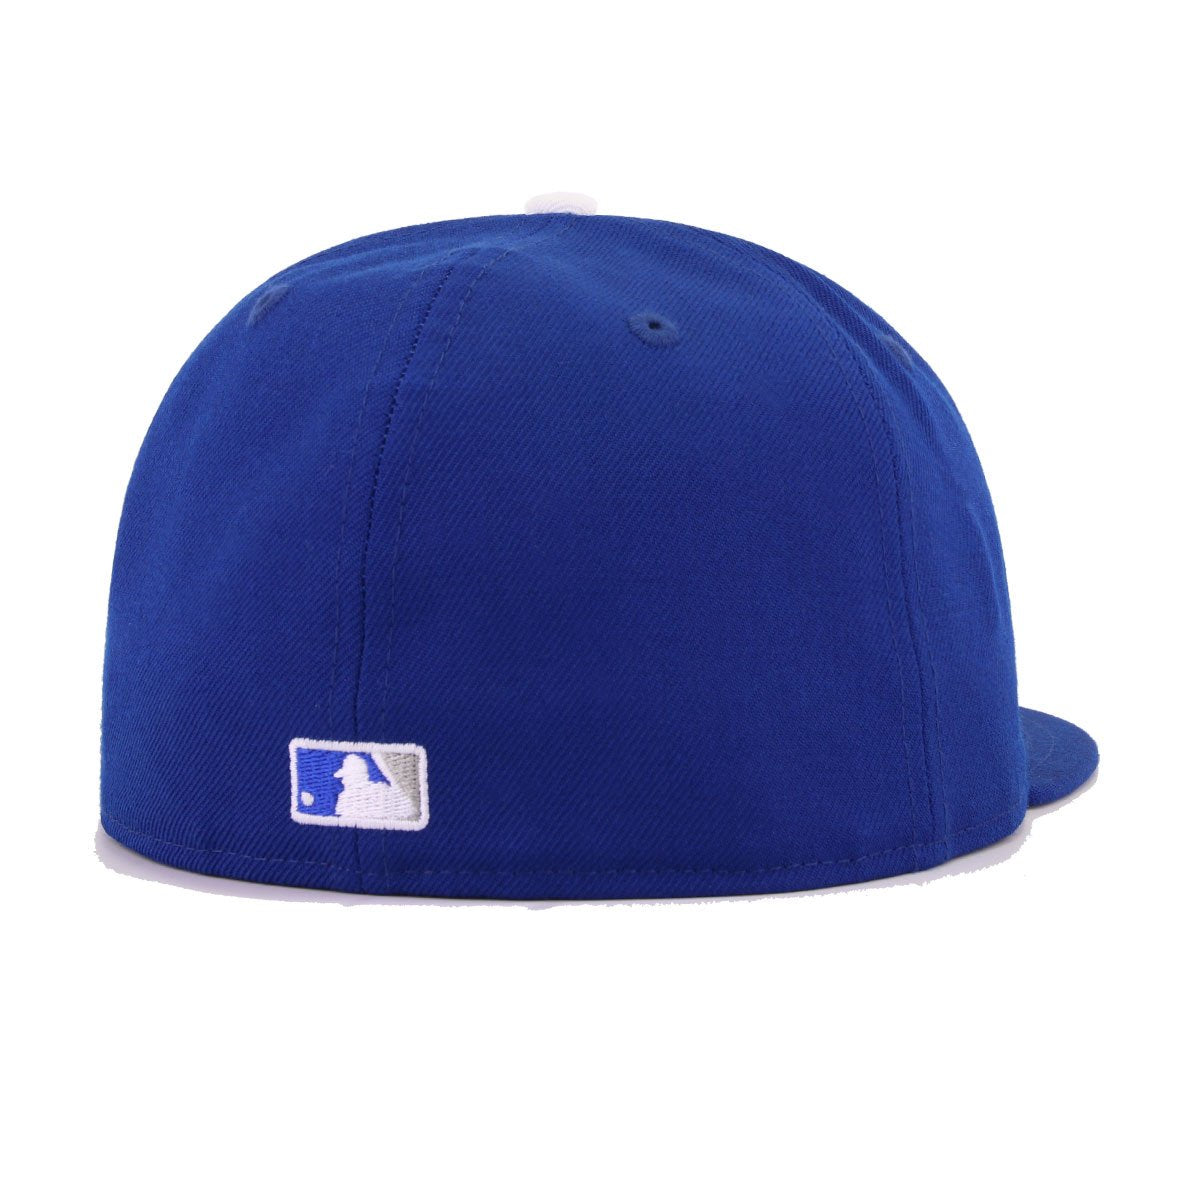 Kansas City Royals Light Royal Blue Cooperstown New Era 59Fifty Fitted